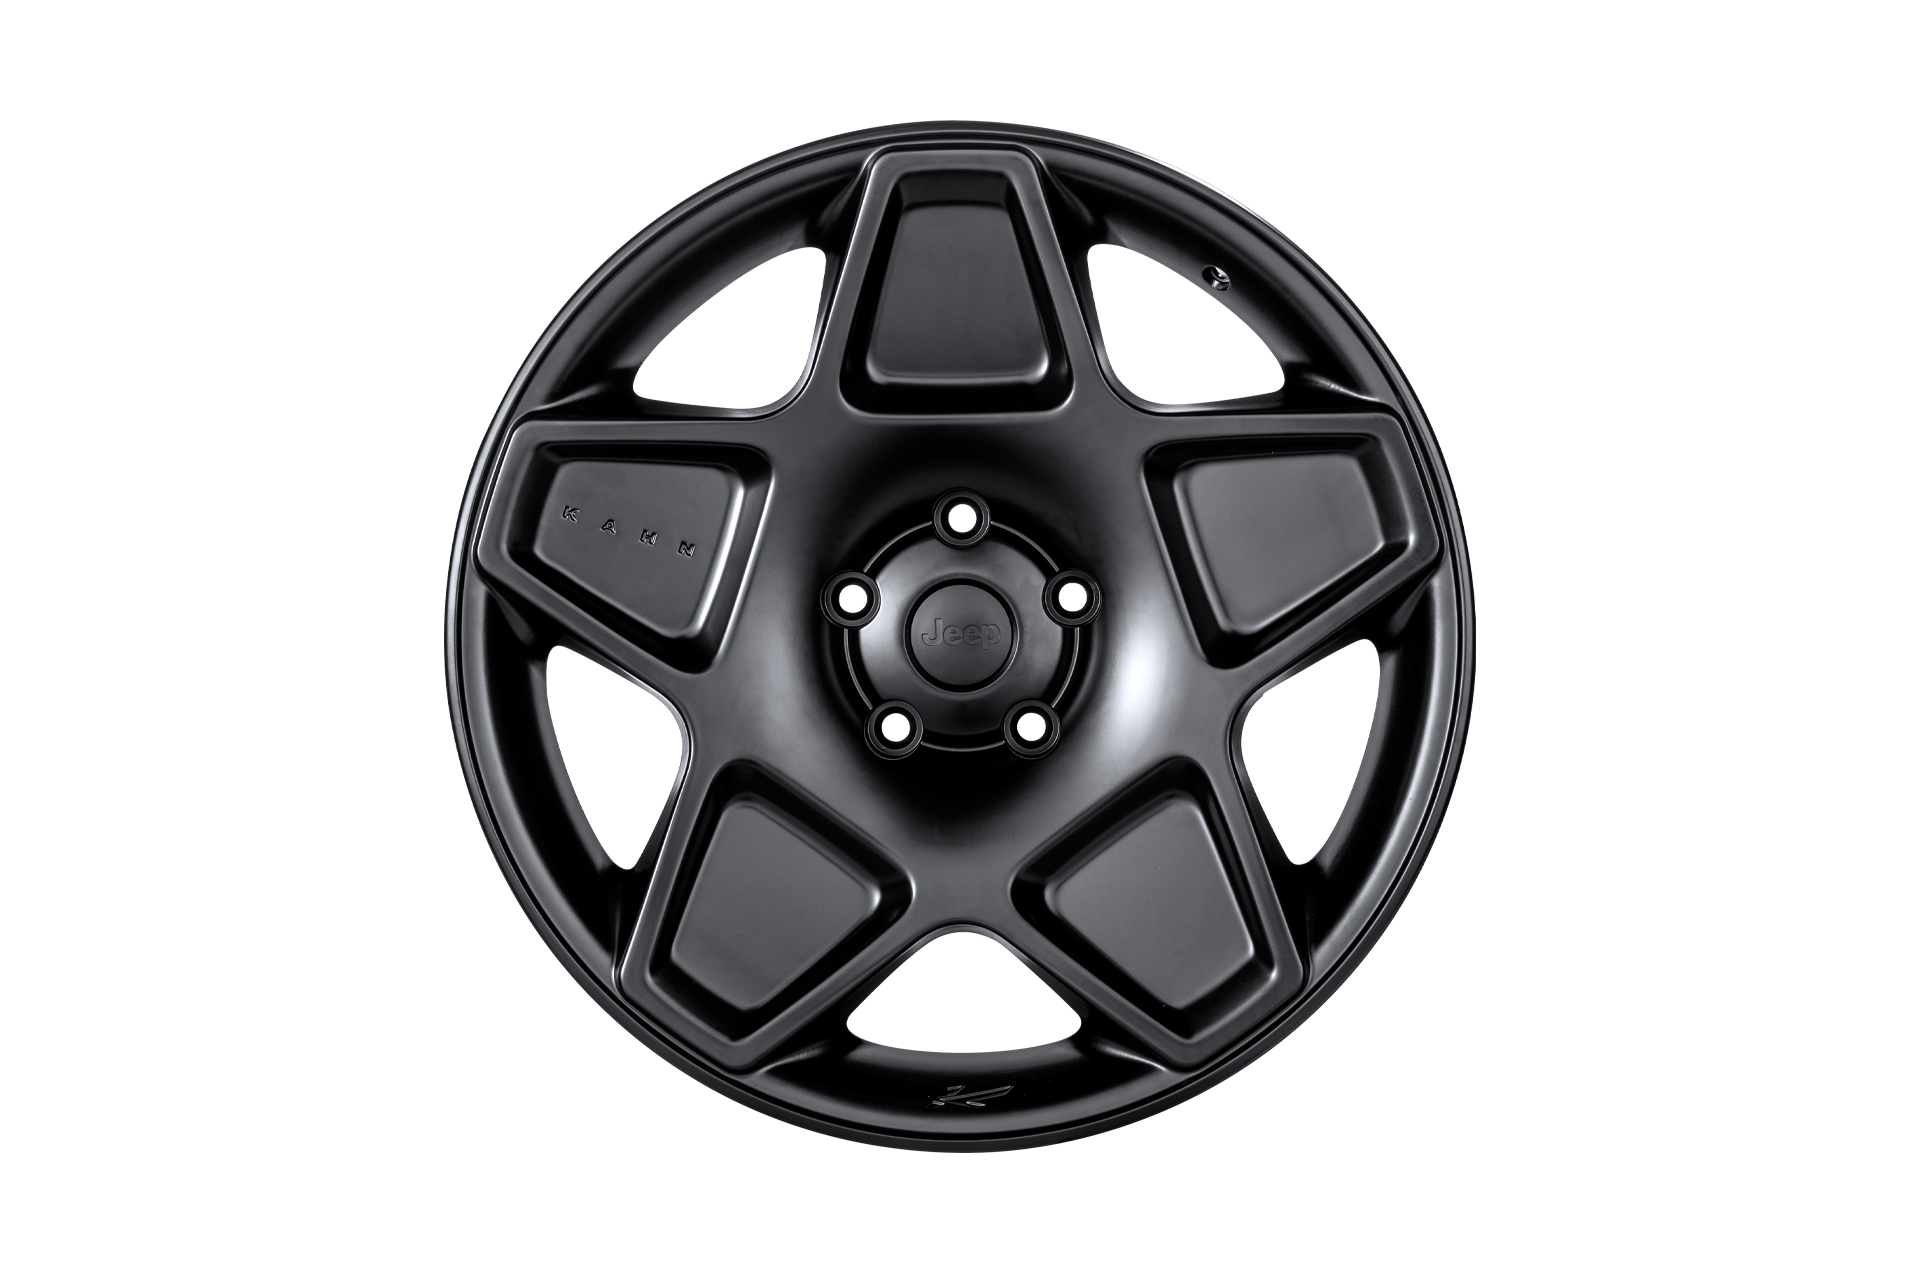 Jeep Wrangler Jk (2007-2018)  Mondial Retro Light Alloy Wheels Image 4796